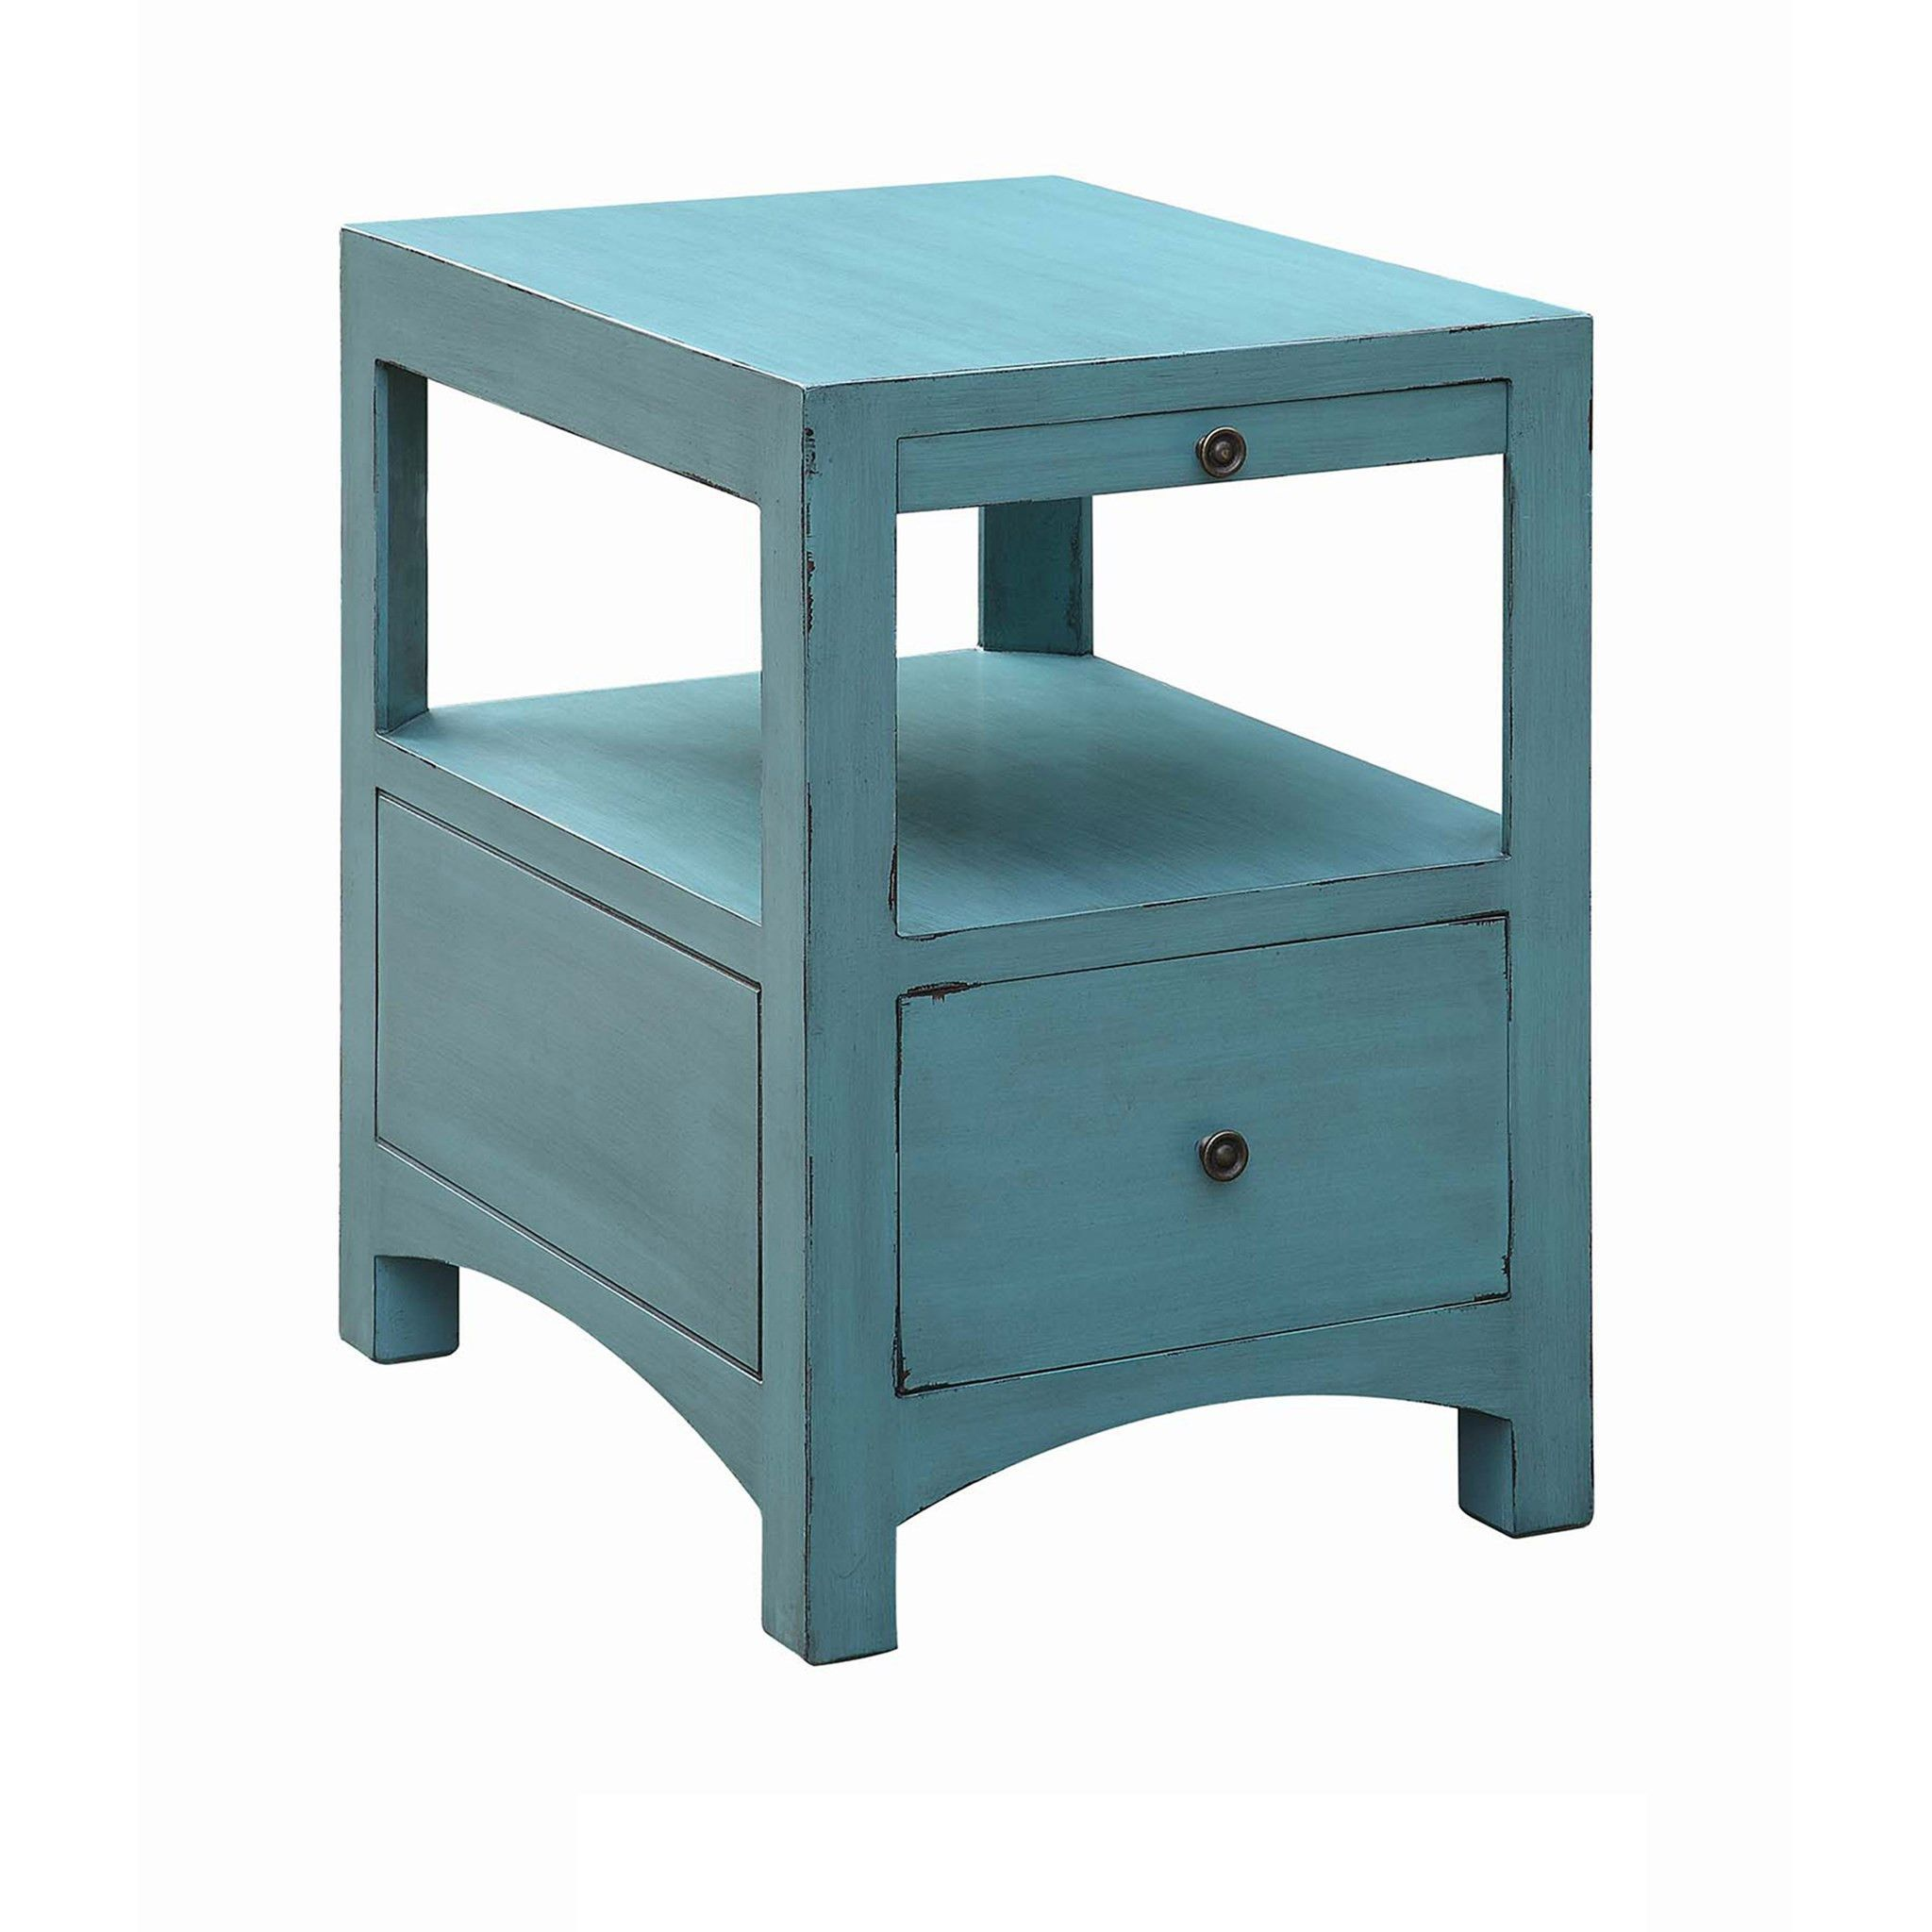 drawer table also ideas short images exciting tables wooden with furniture brown legs end along drawers and best shelves